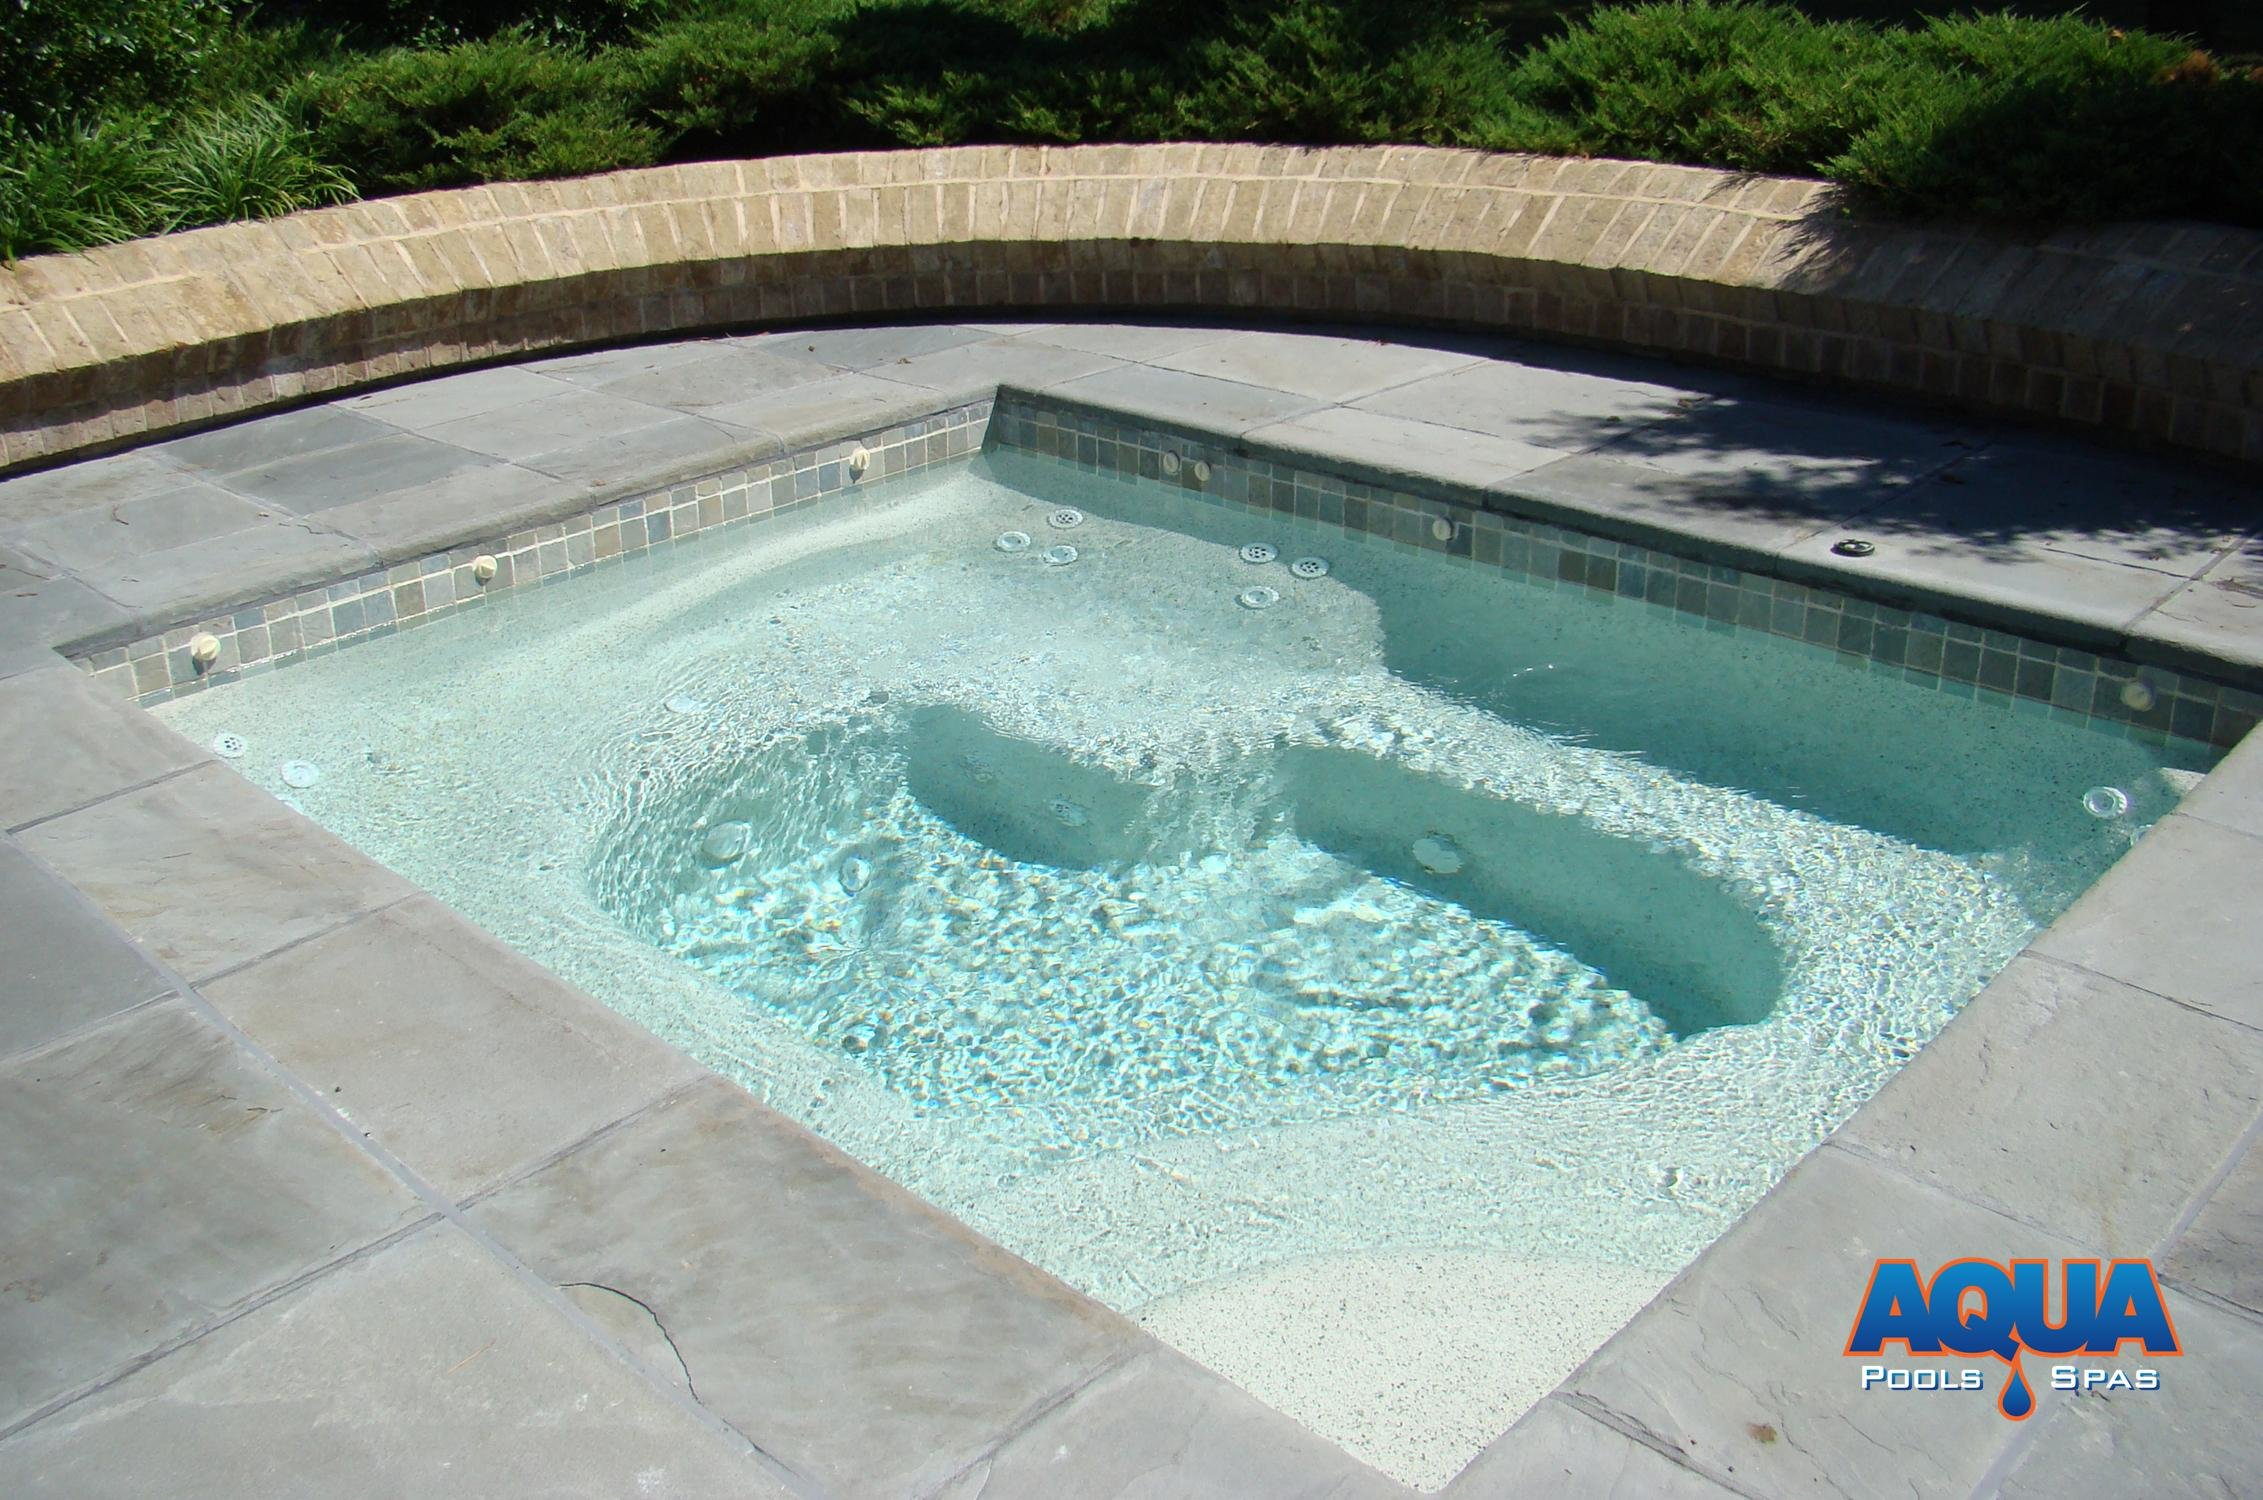 Jacuzzi Pool De Custom Spas Custom Gunite Hot Tubs Aqua Pools Spas Easton Maryland